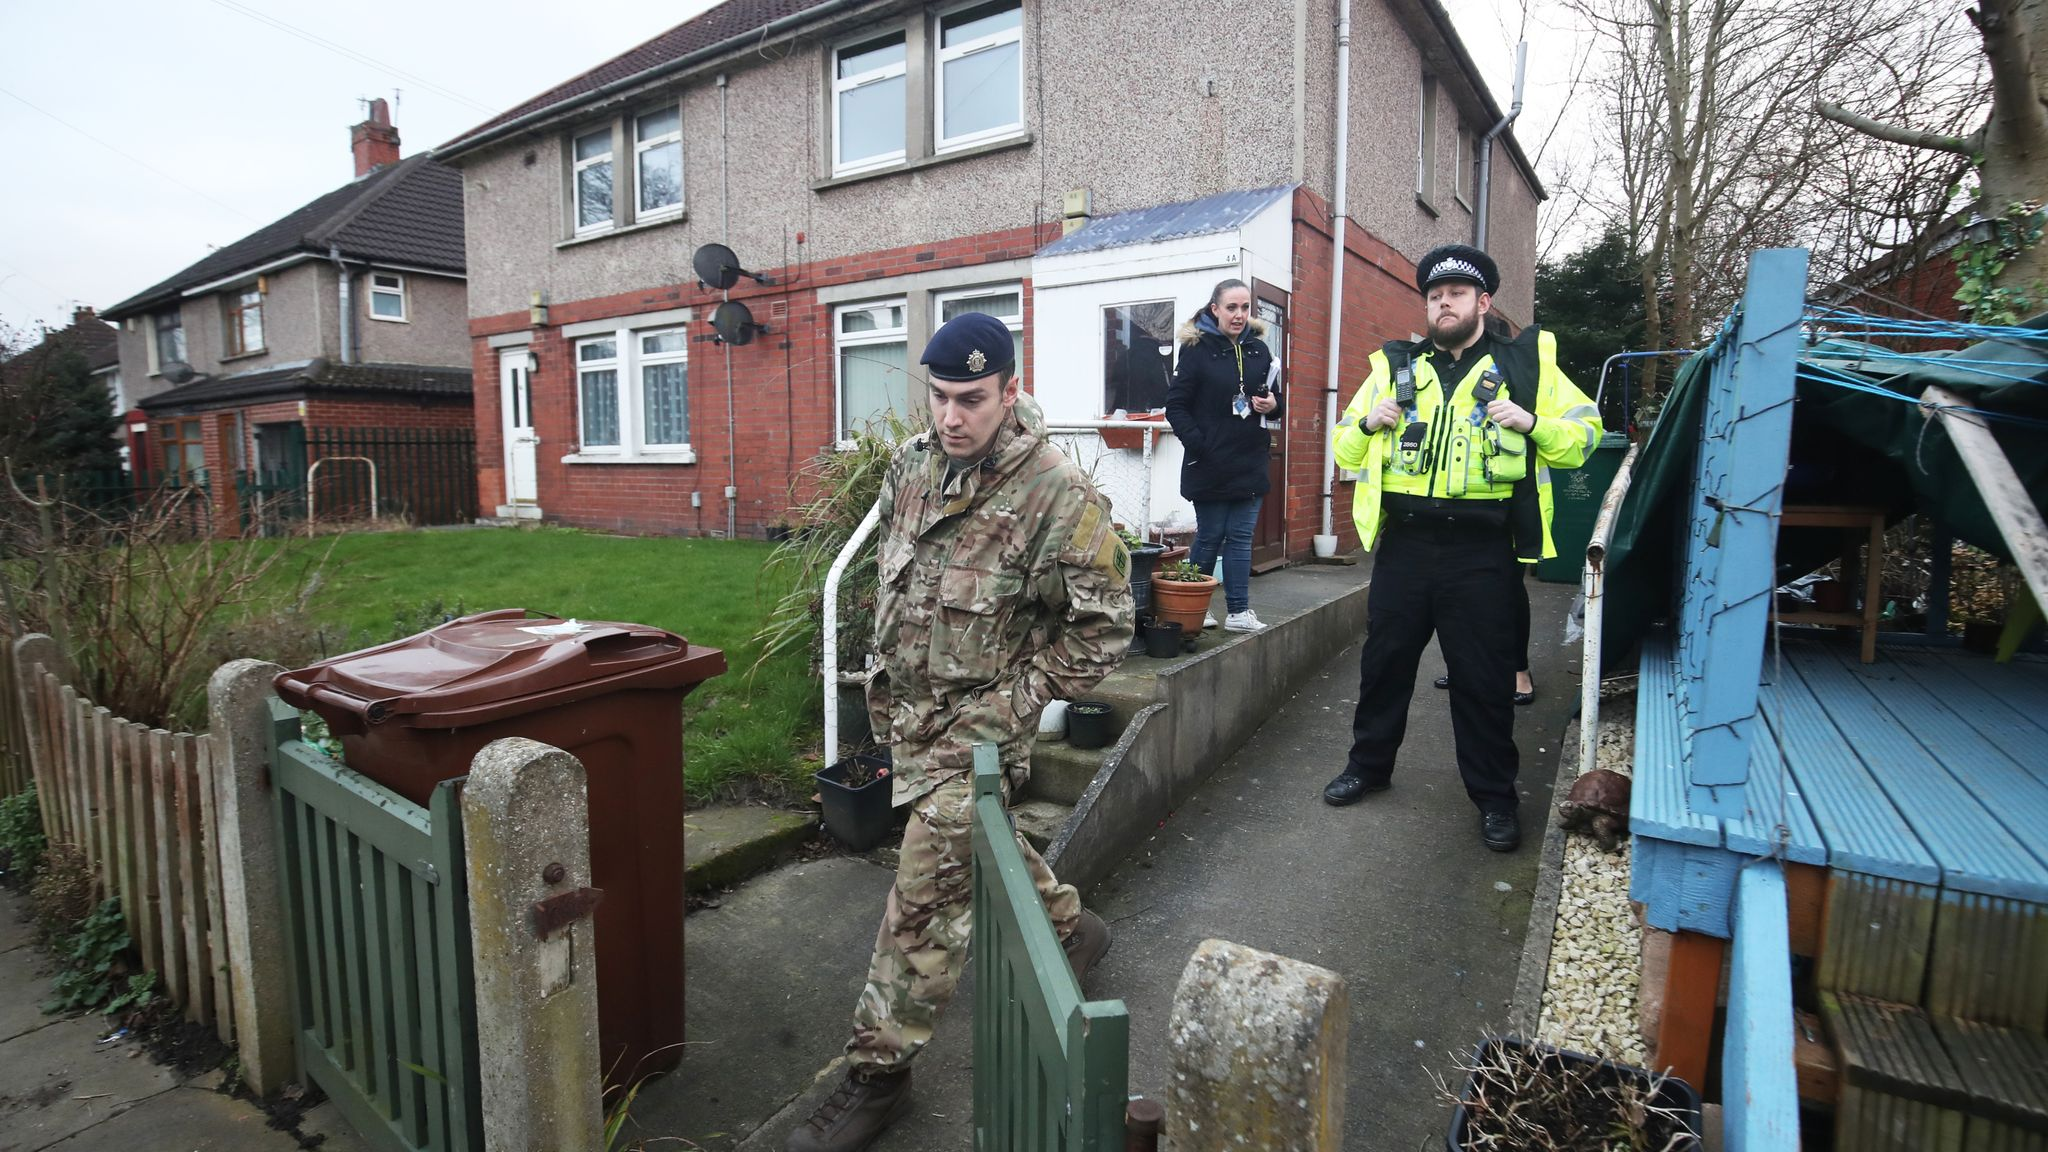 Man arrested after bomb squad searches three homes in Bradford